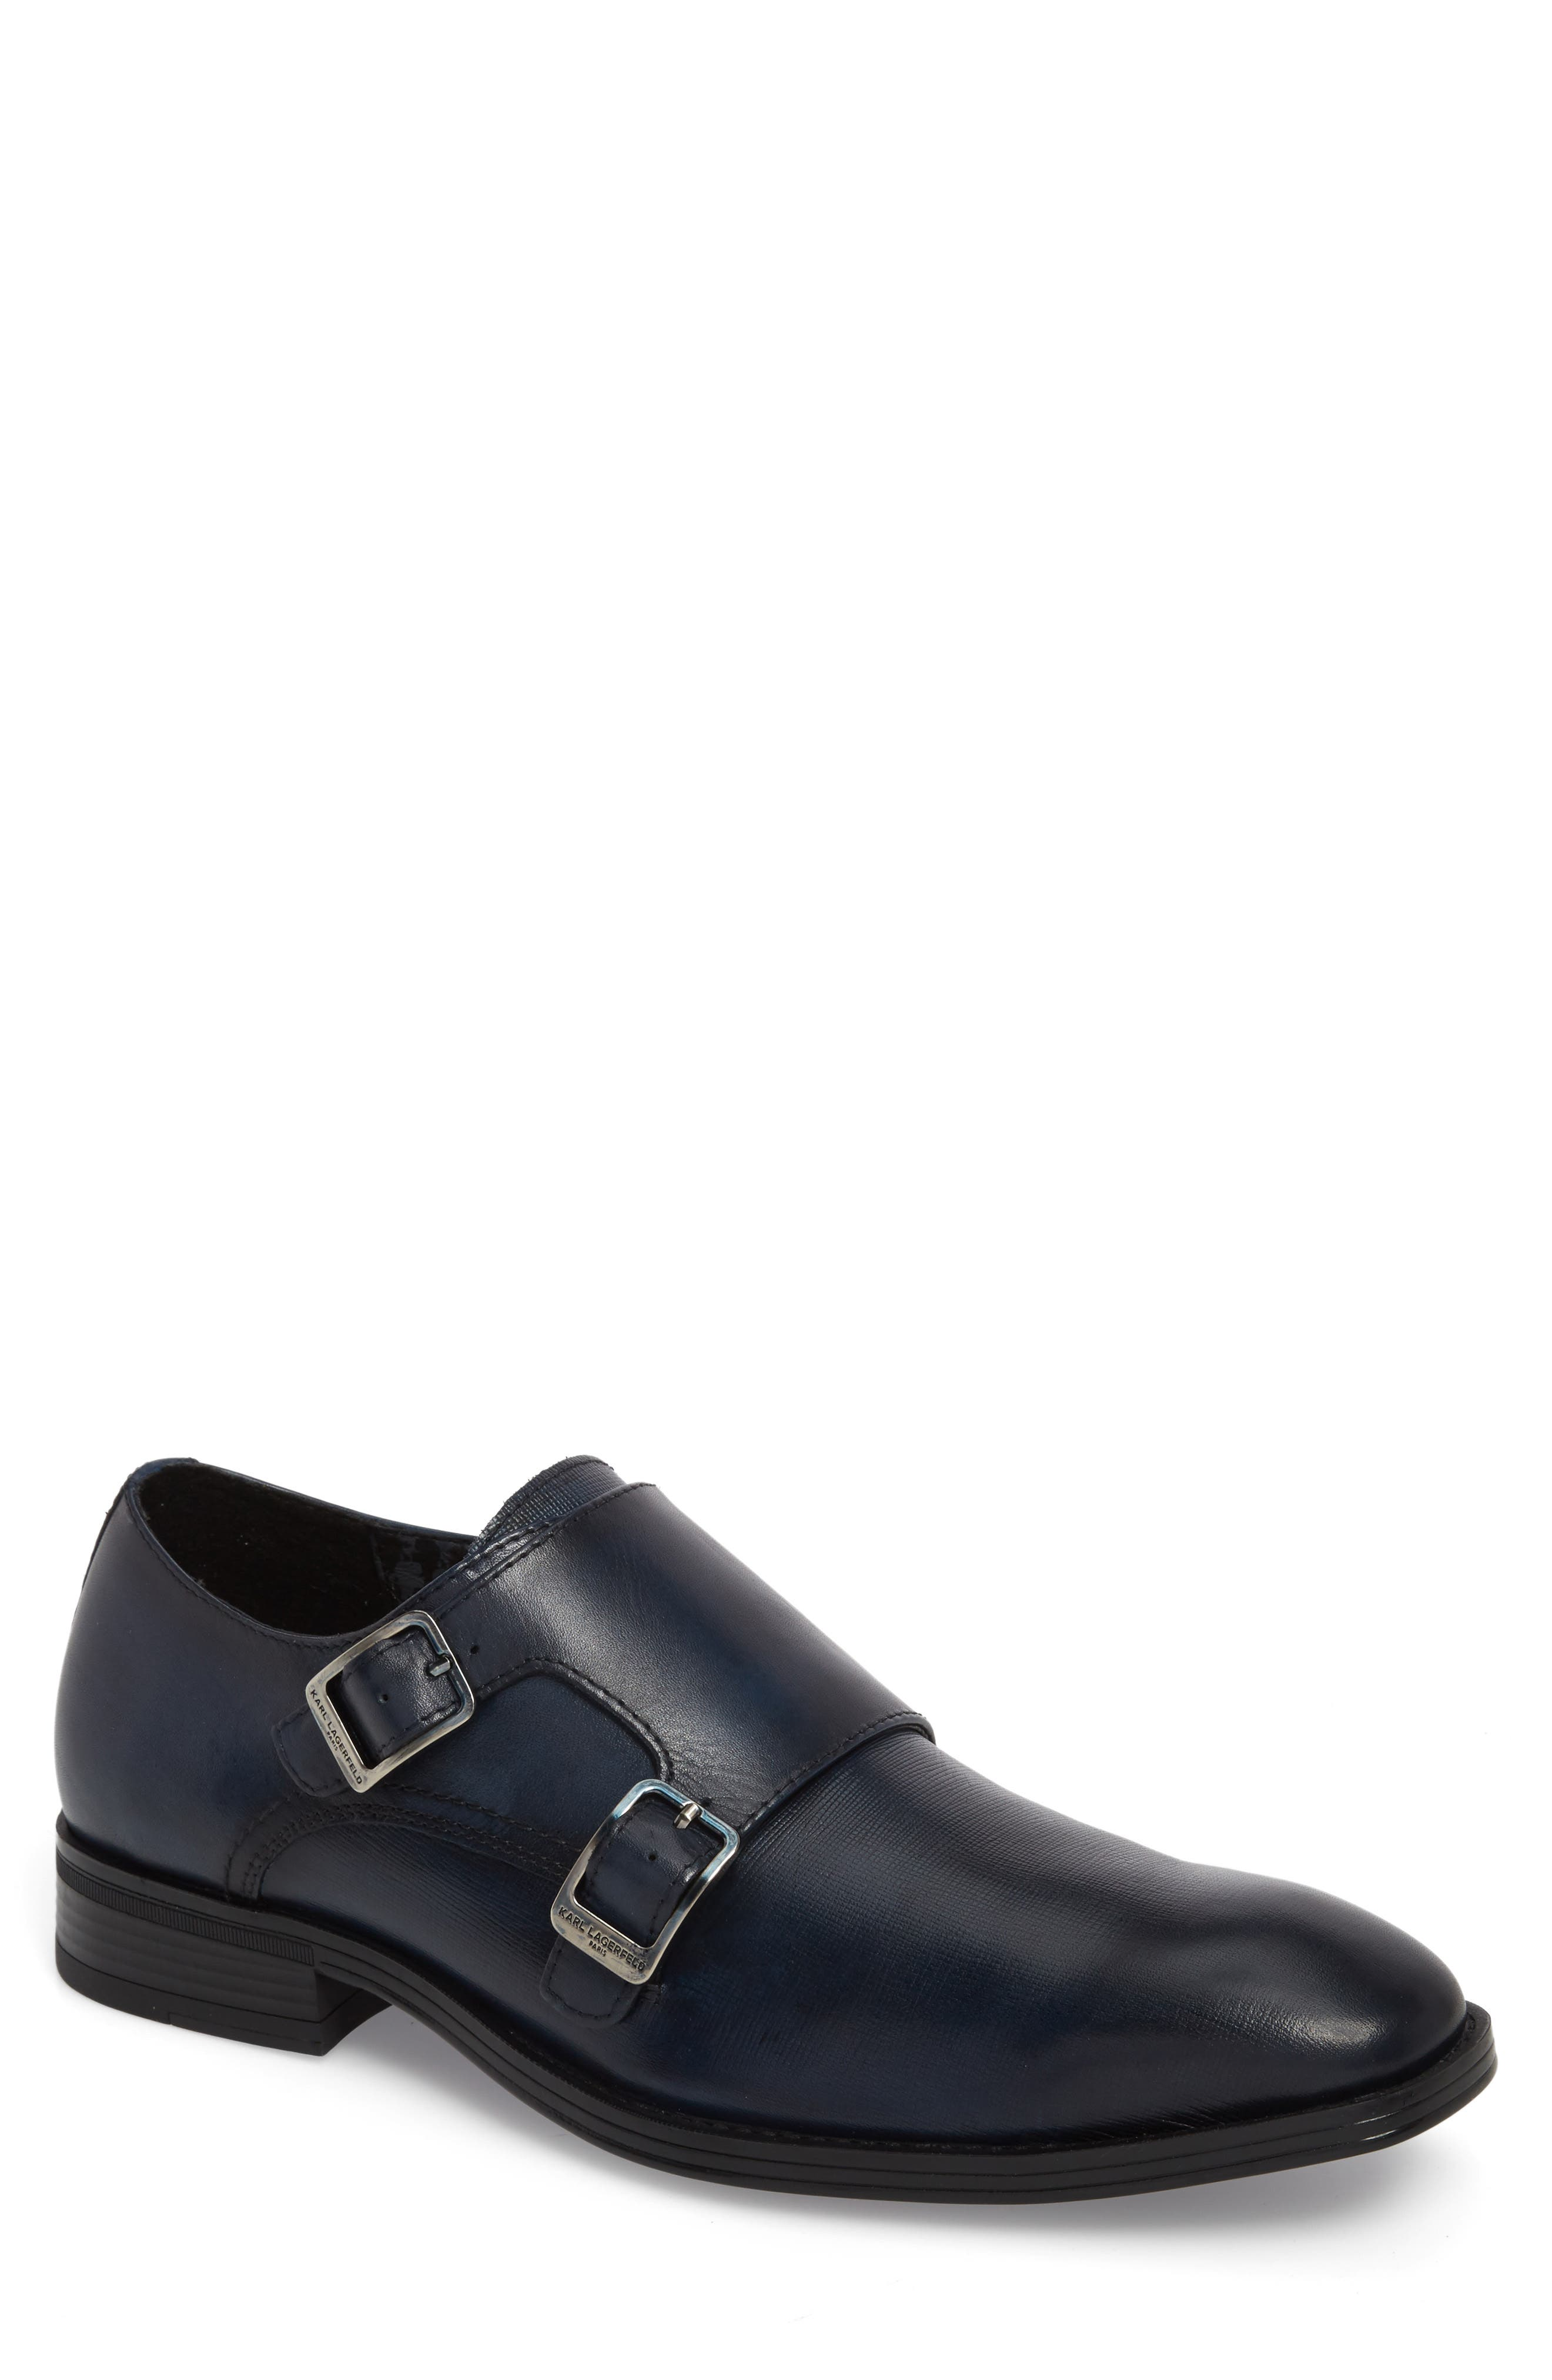 Karl Lagerfeld Double Strap Monk Shoe,                         Main,                         color, Navy